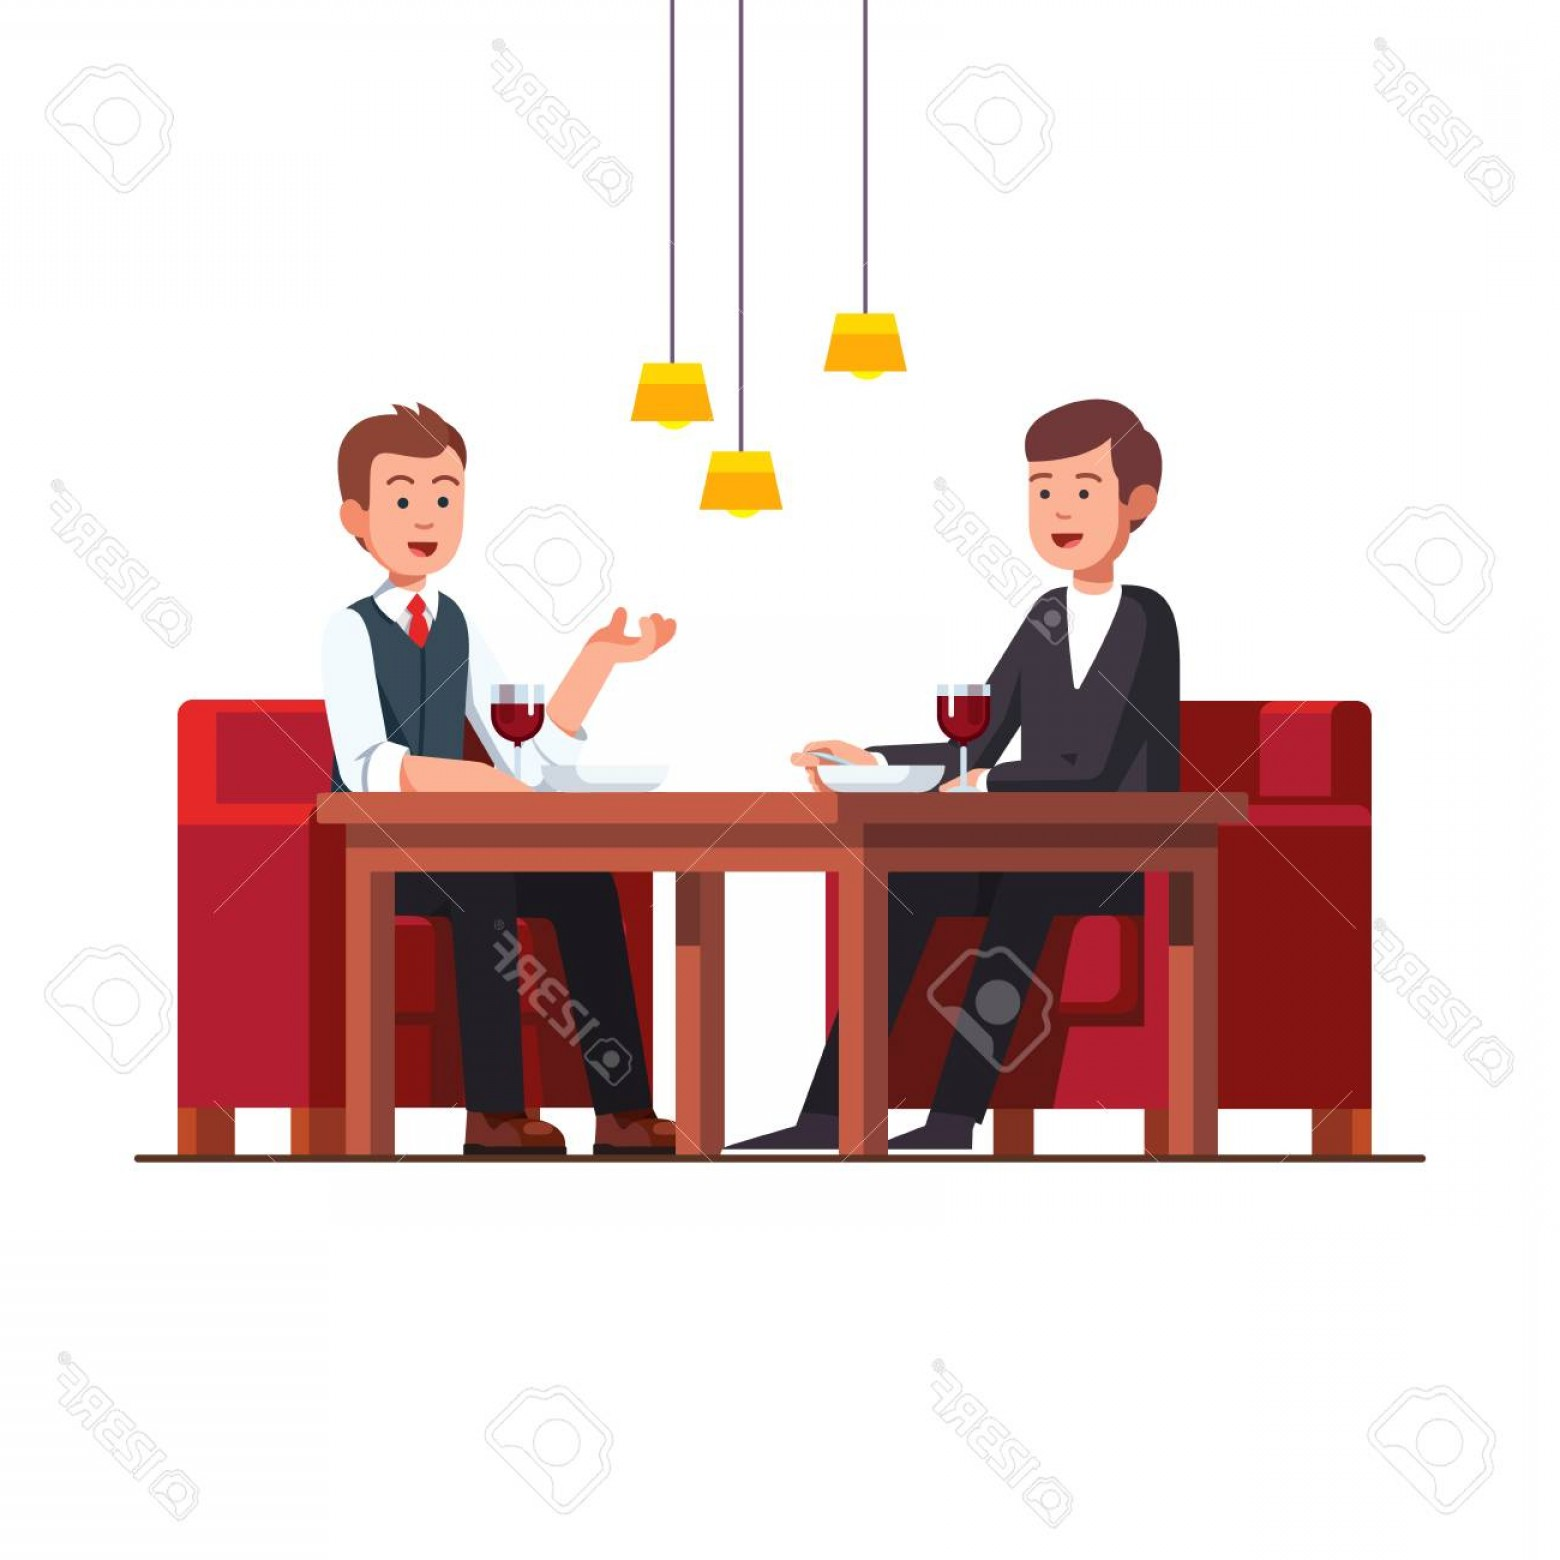 Business Lunch Clip Art Vector: Photostock Vector Two Business Man Eating Lunch At Restaurant Vector Illustration